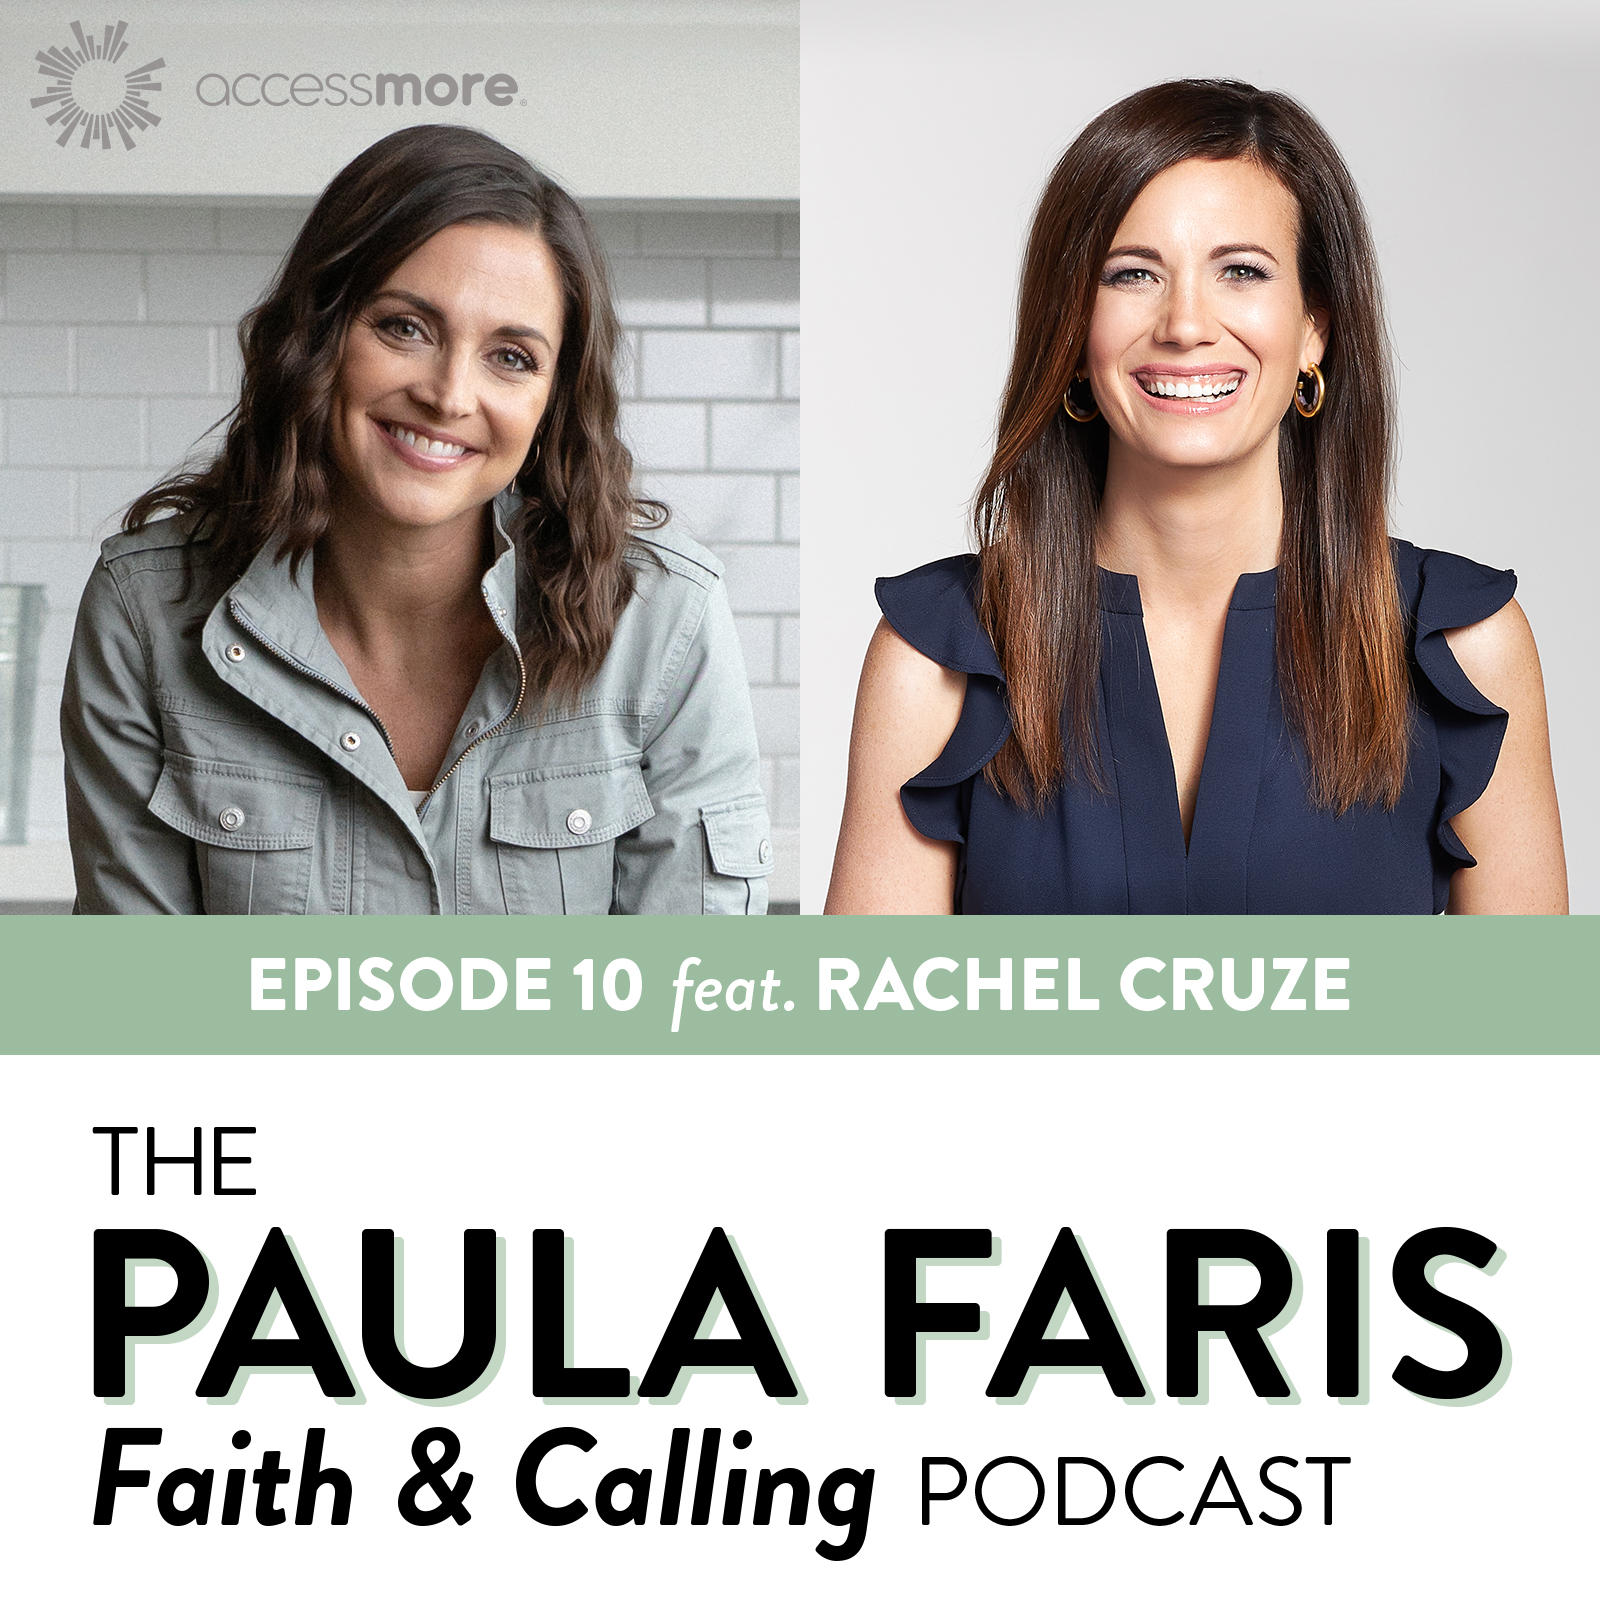 Ep 10 - Rachel Cruze: Giving Yourself Permission to Slow Down